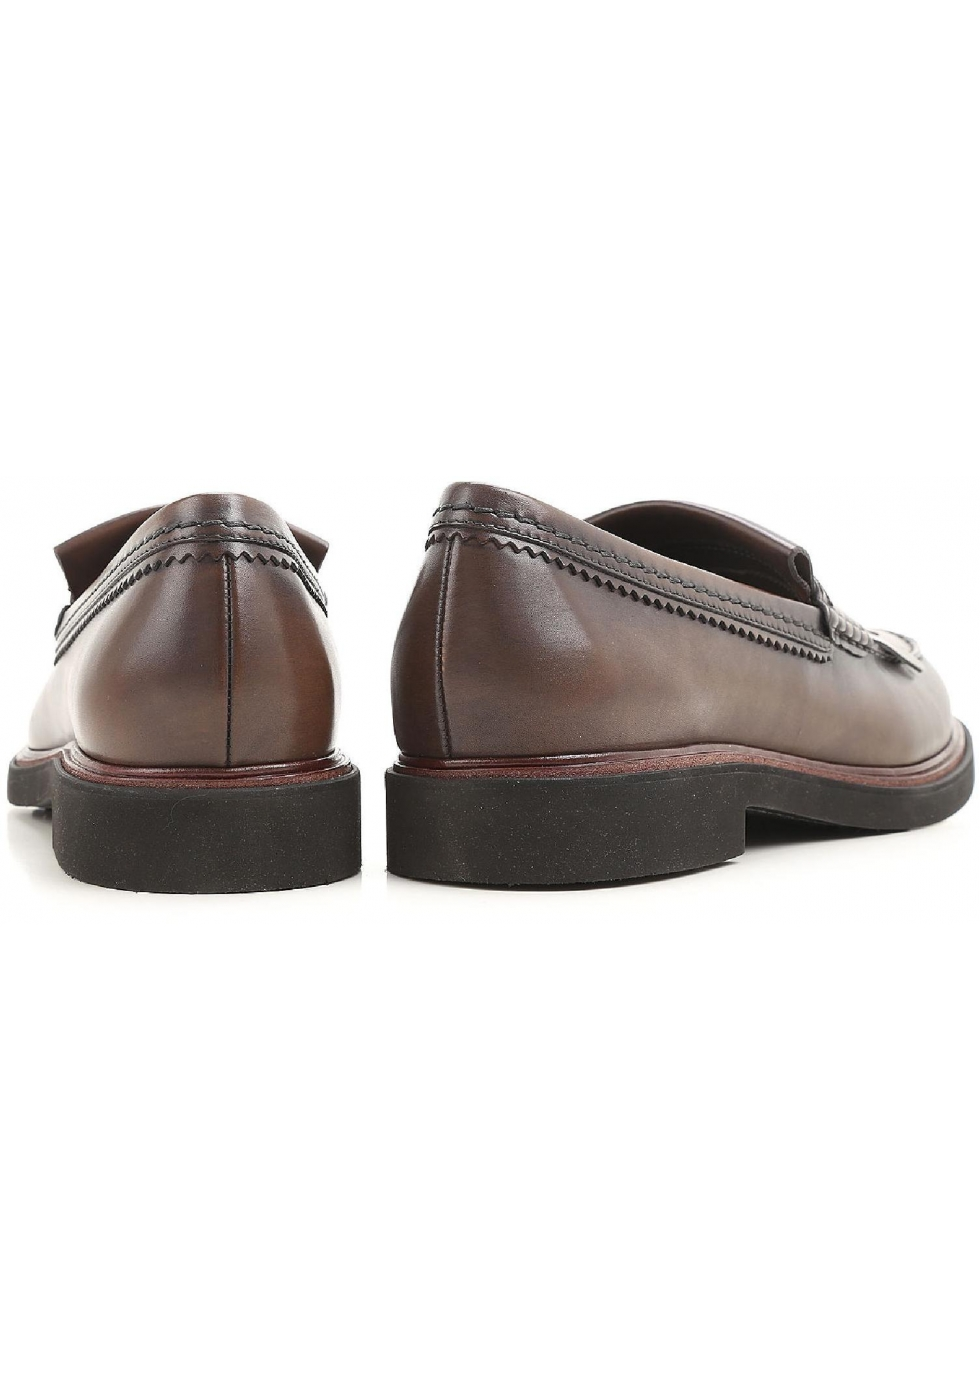 Leather shoes brands in usa